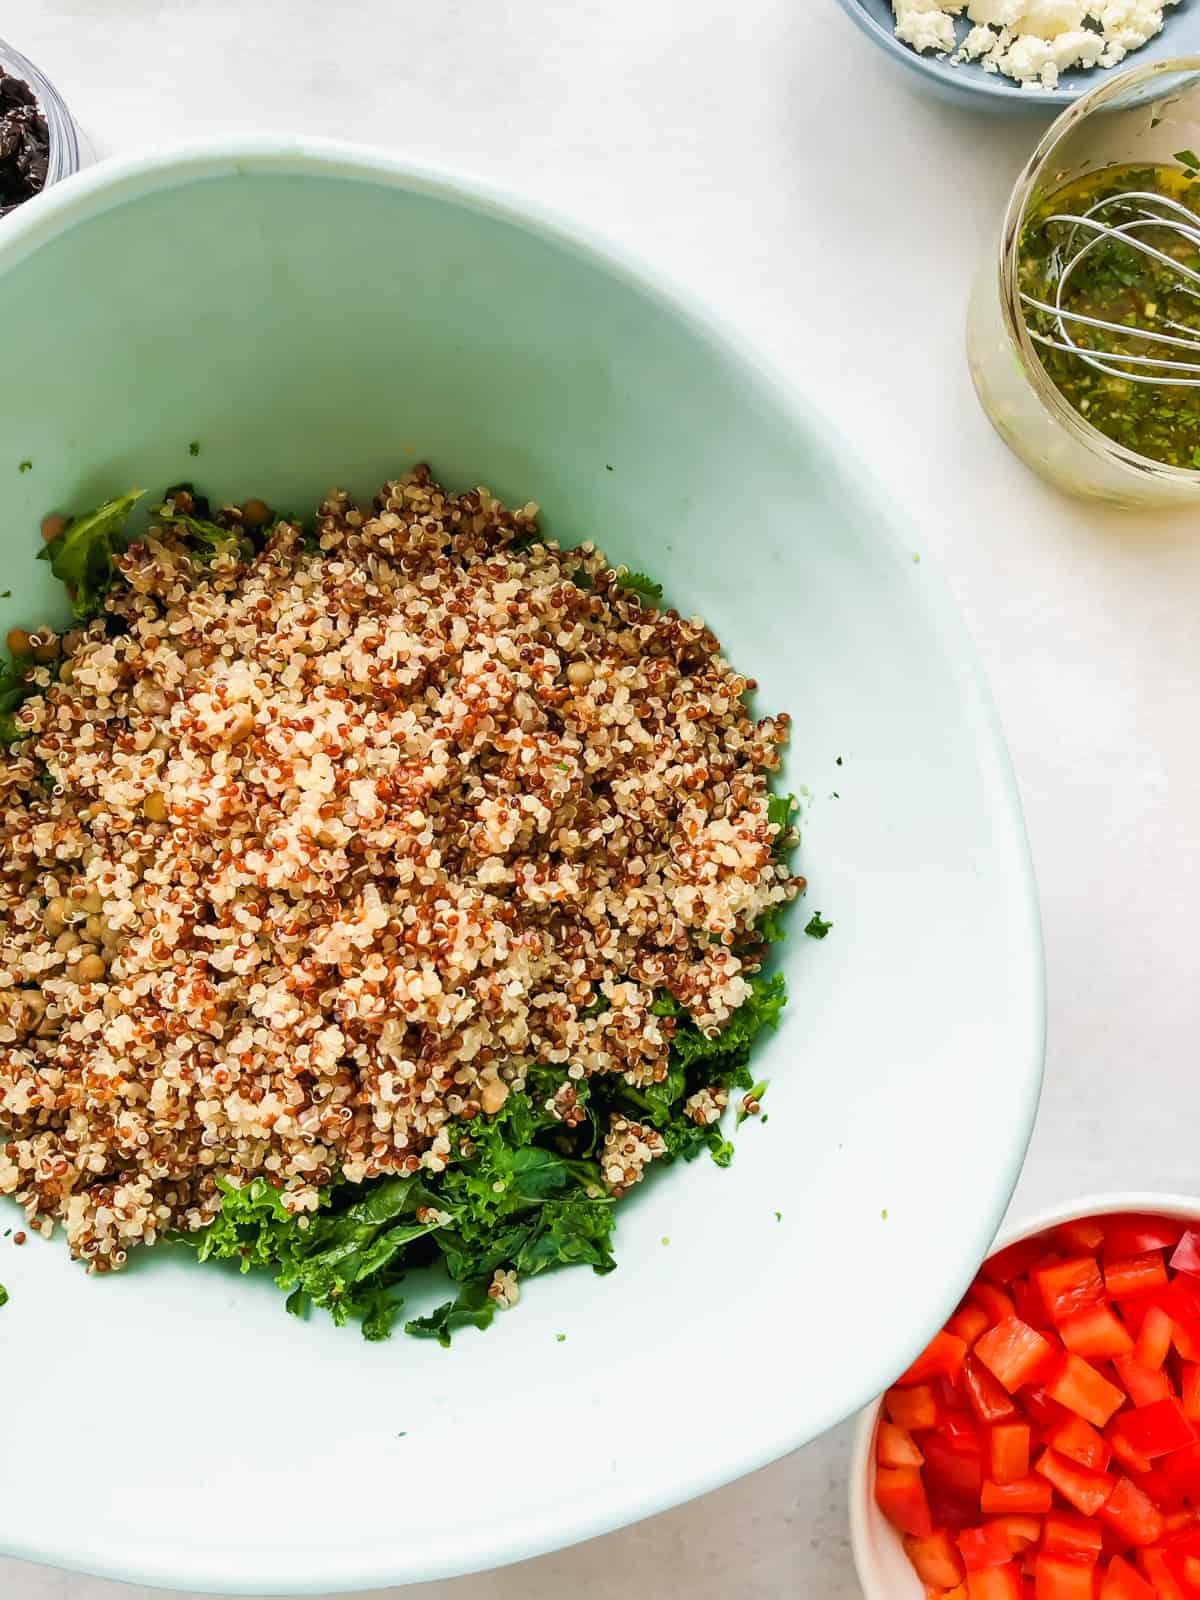 kale quinoa and lentils in blue bowl